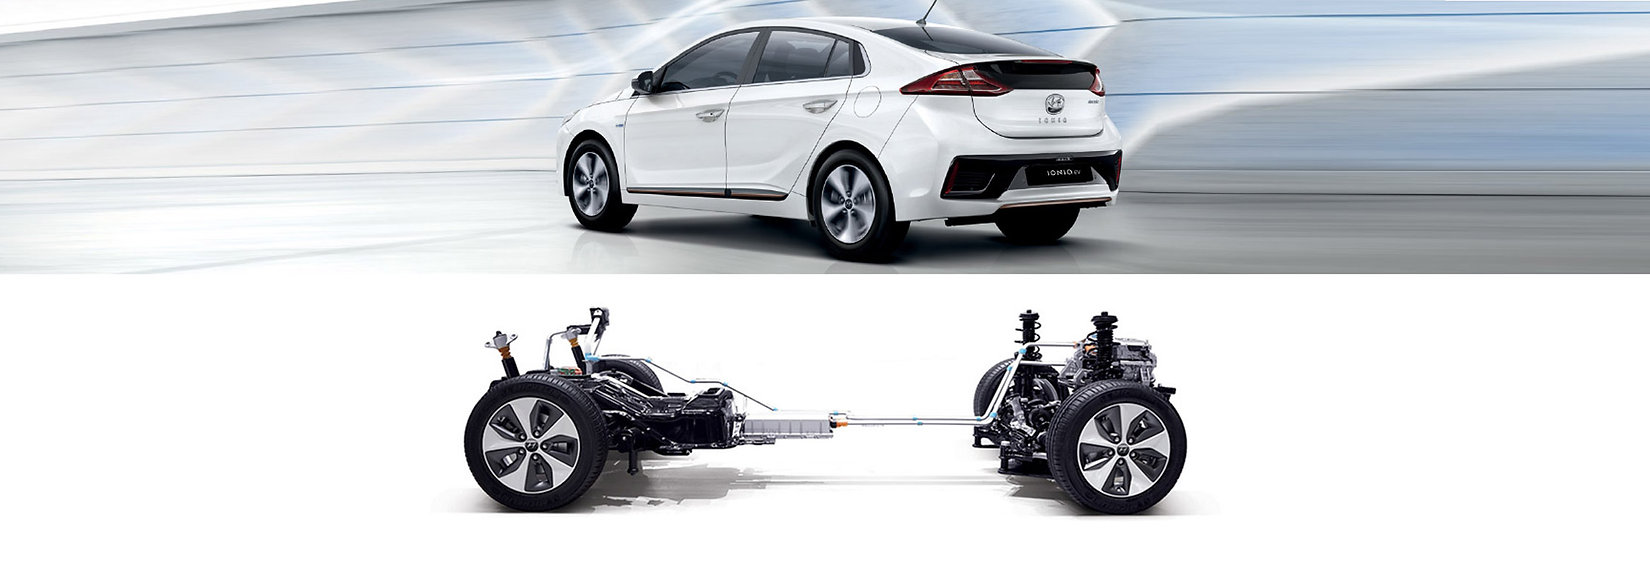 new-ioniqEV-cleanAndSimple-pic.jpg